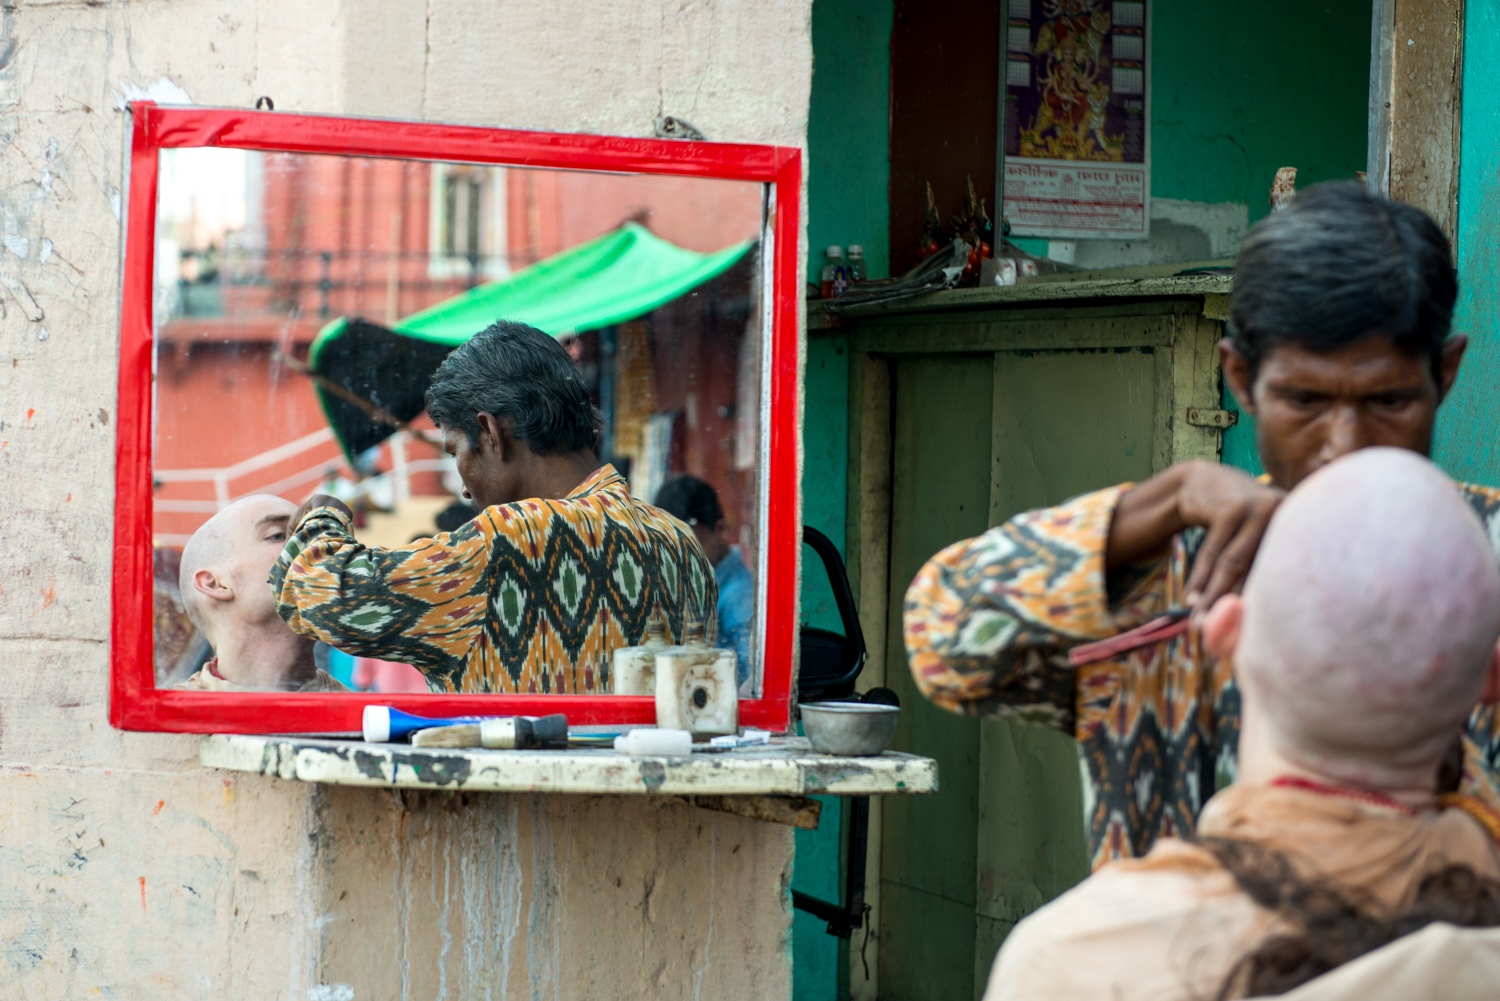 As hairdressers only require a few essentials to start their business (mainly a mirror, a chair and some clippers)they are able to set up shop almost anywhere -Uttar Pradesh, India.